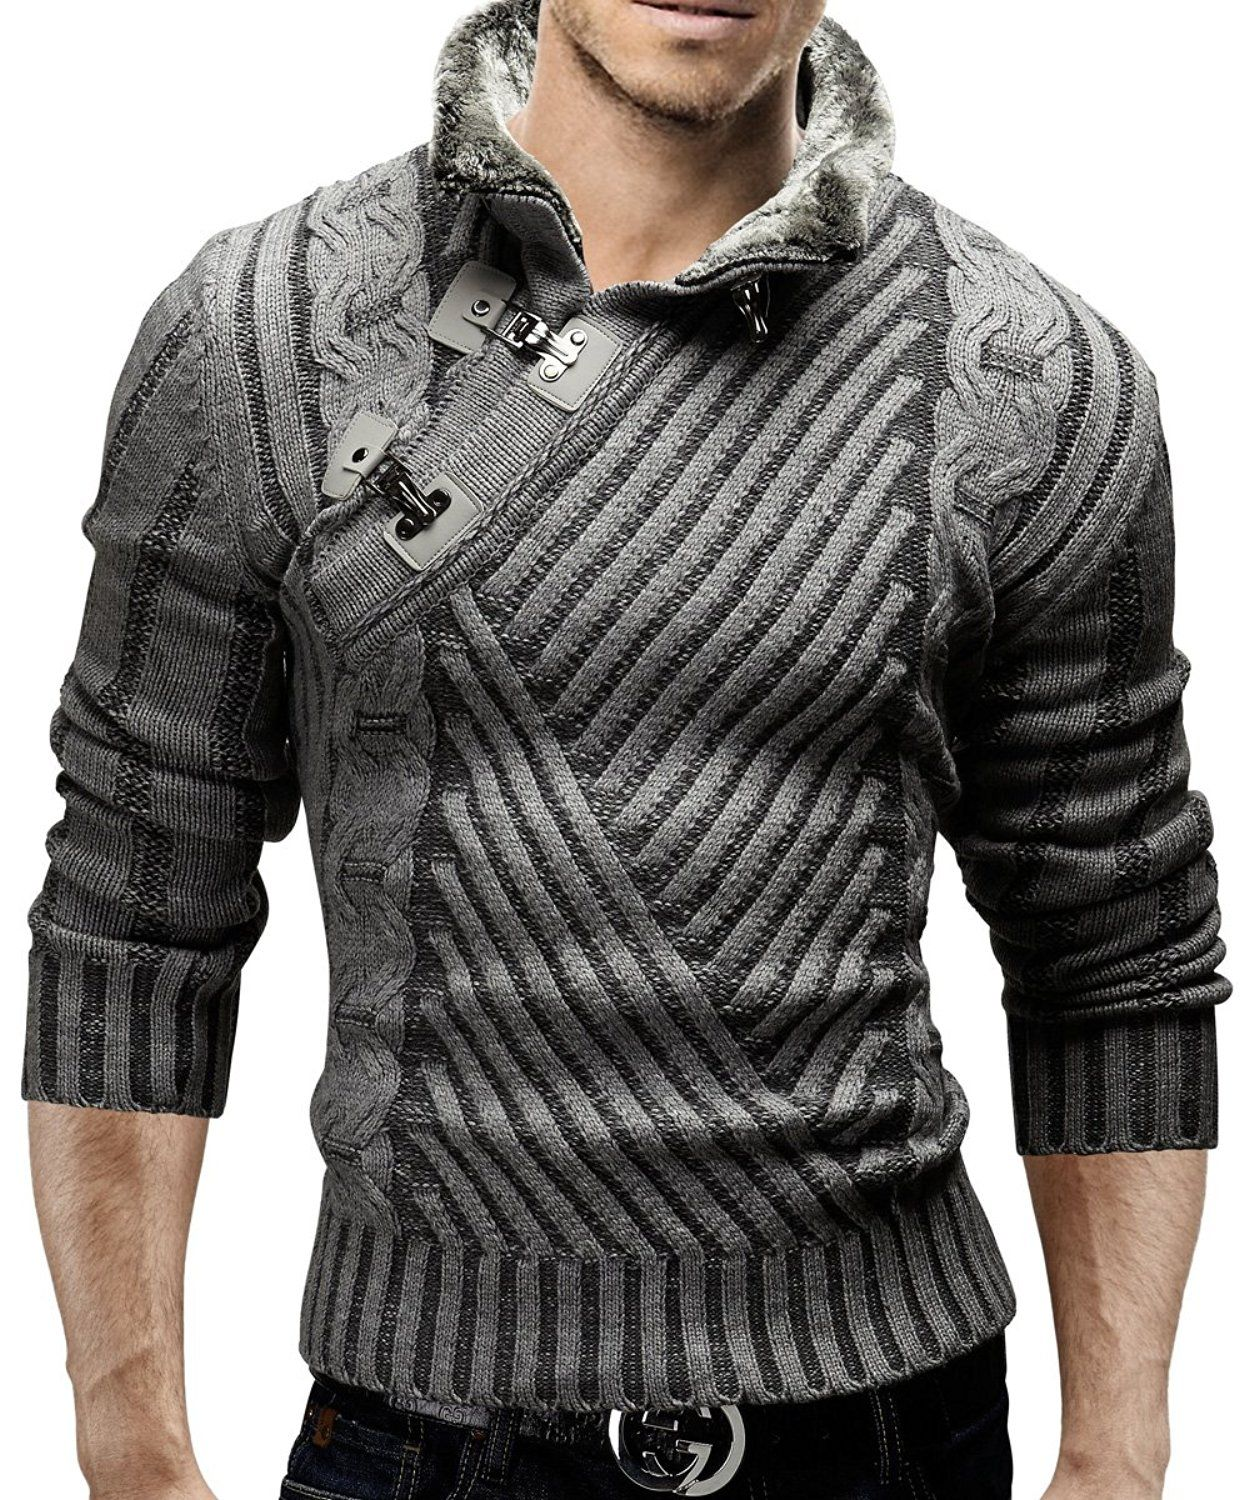 a4aa2cd63 Merish Strickpullover Pullover Fellkragen Strickjacke Hoodie Slim Fit  Herren 548: Amazon.de: Bekleidung